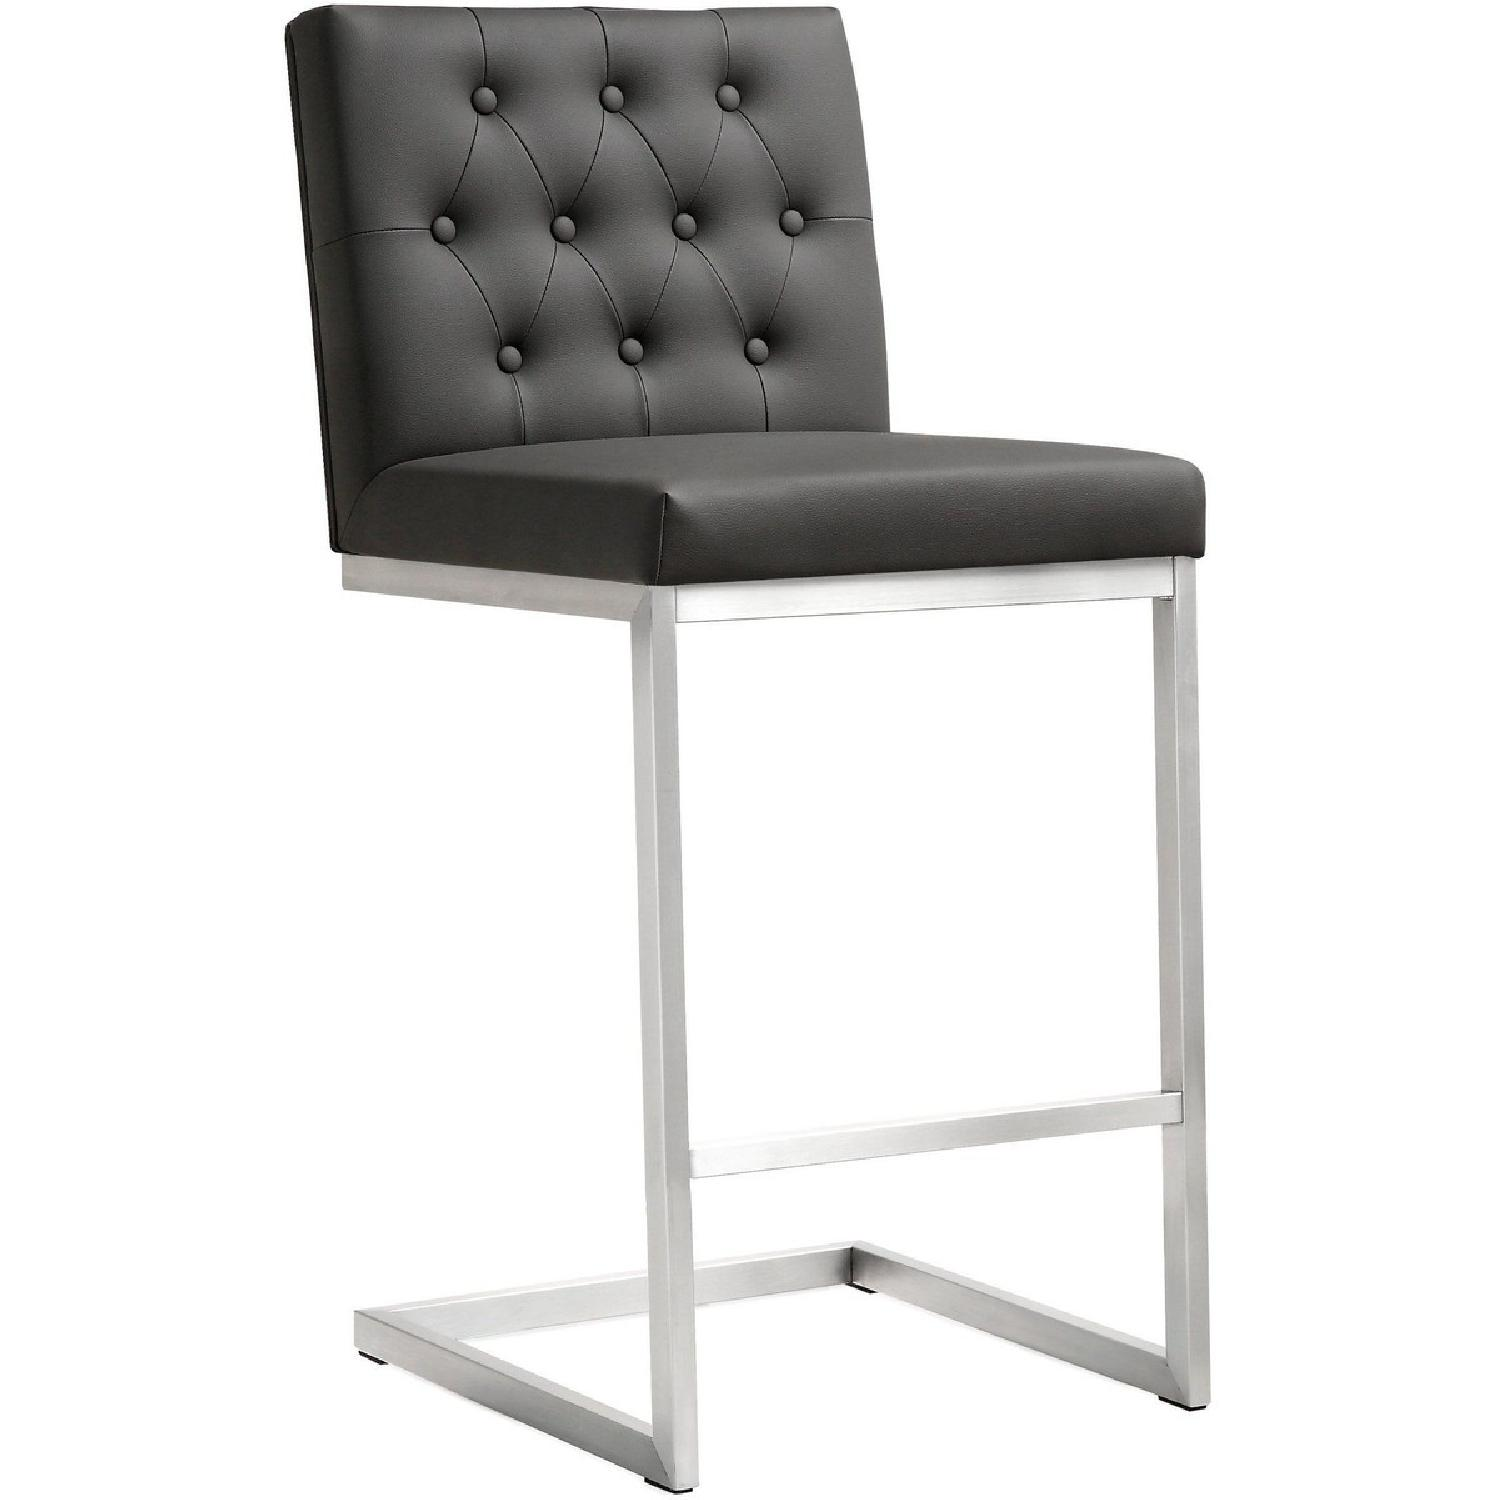 TOV Helsinki Grey Stainless Steel Set of 2 Counter Stools